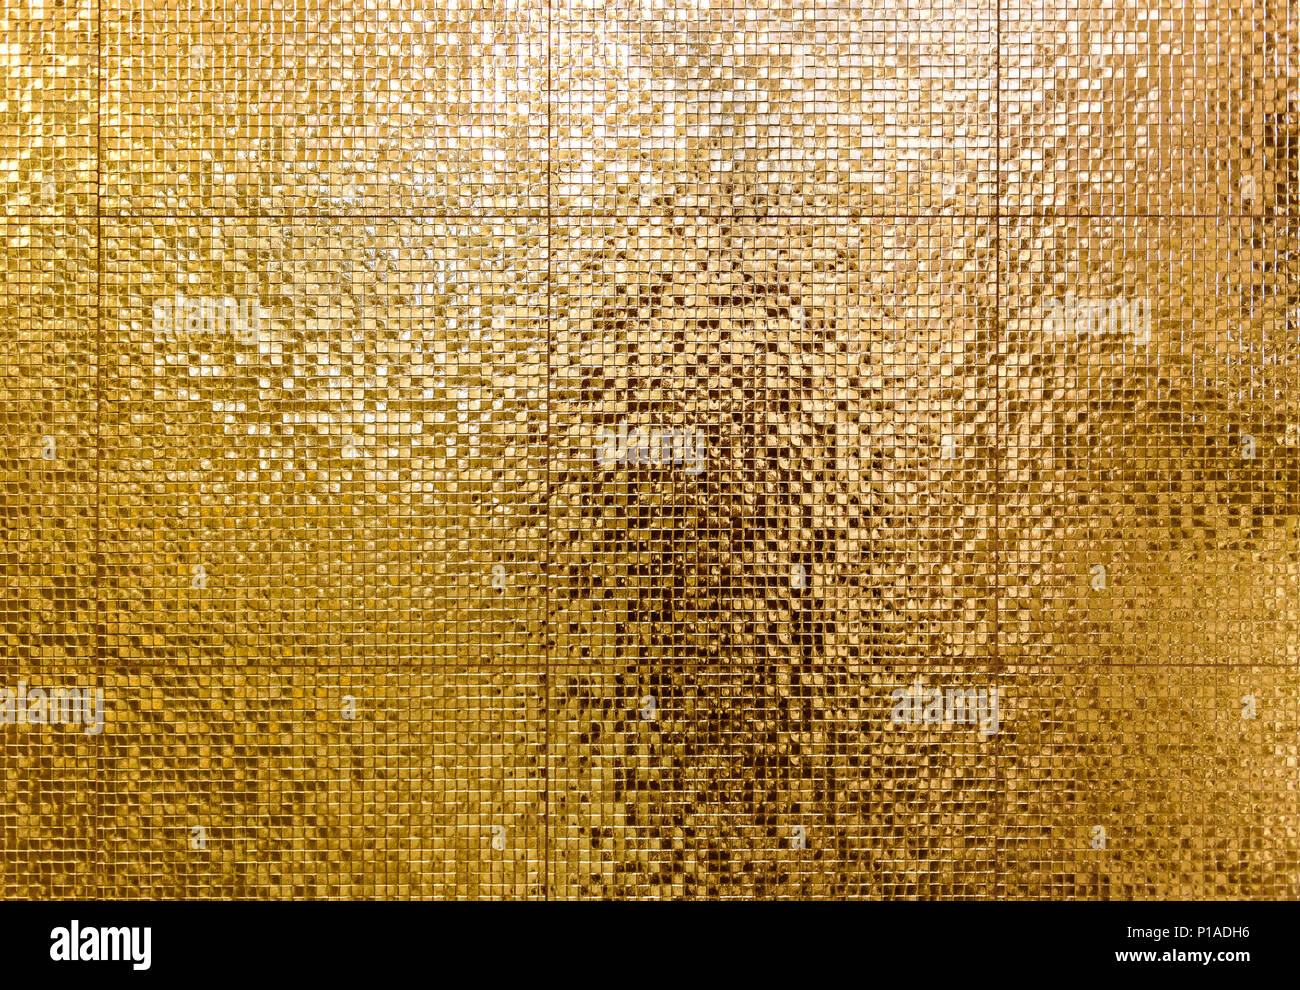 Luxury Gold Mosaic Tiles Background For Bathroom Or